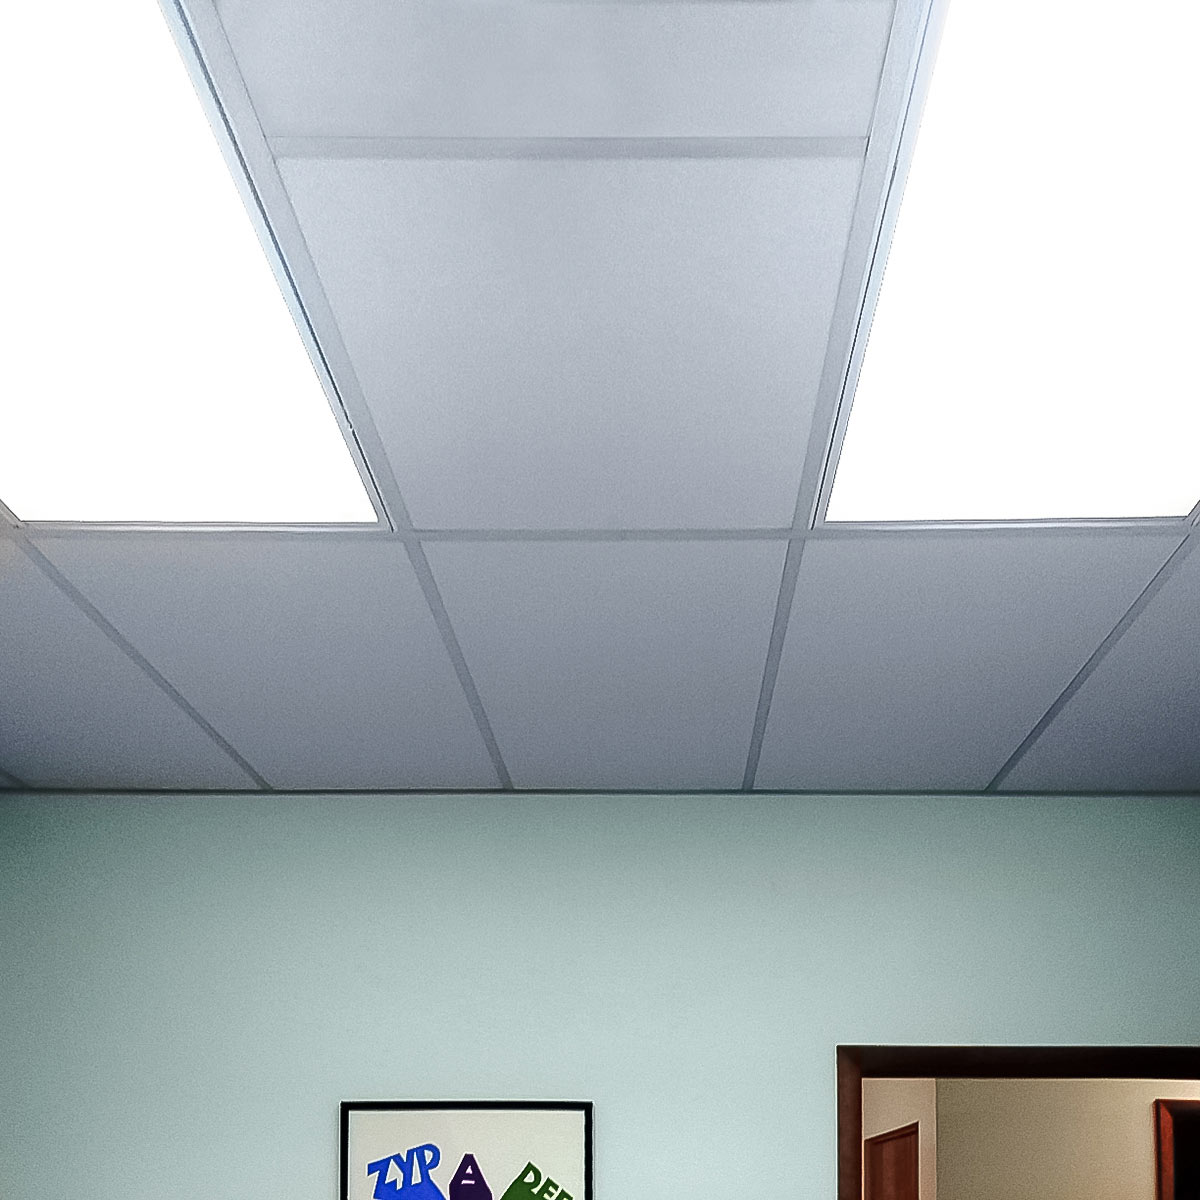 over project ceilings embroidered for ceiling area room elac img light acoustic meeting tiles designboom com